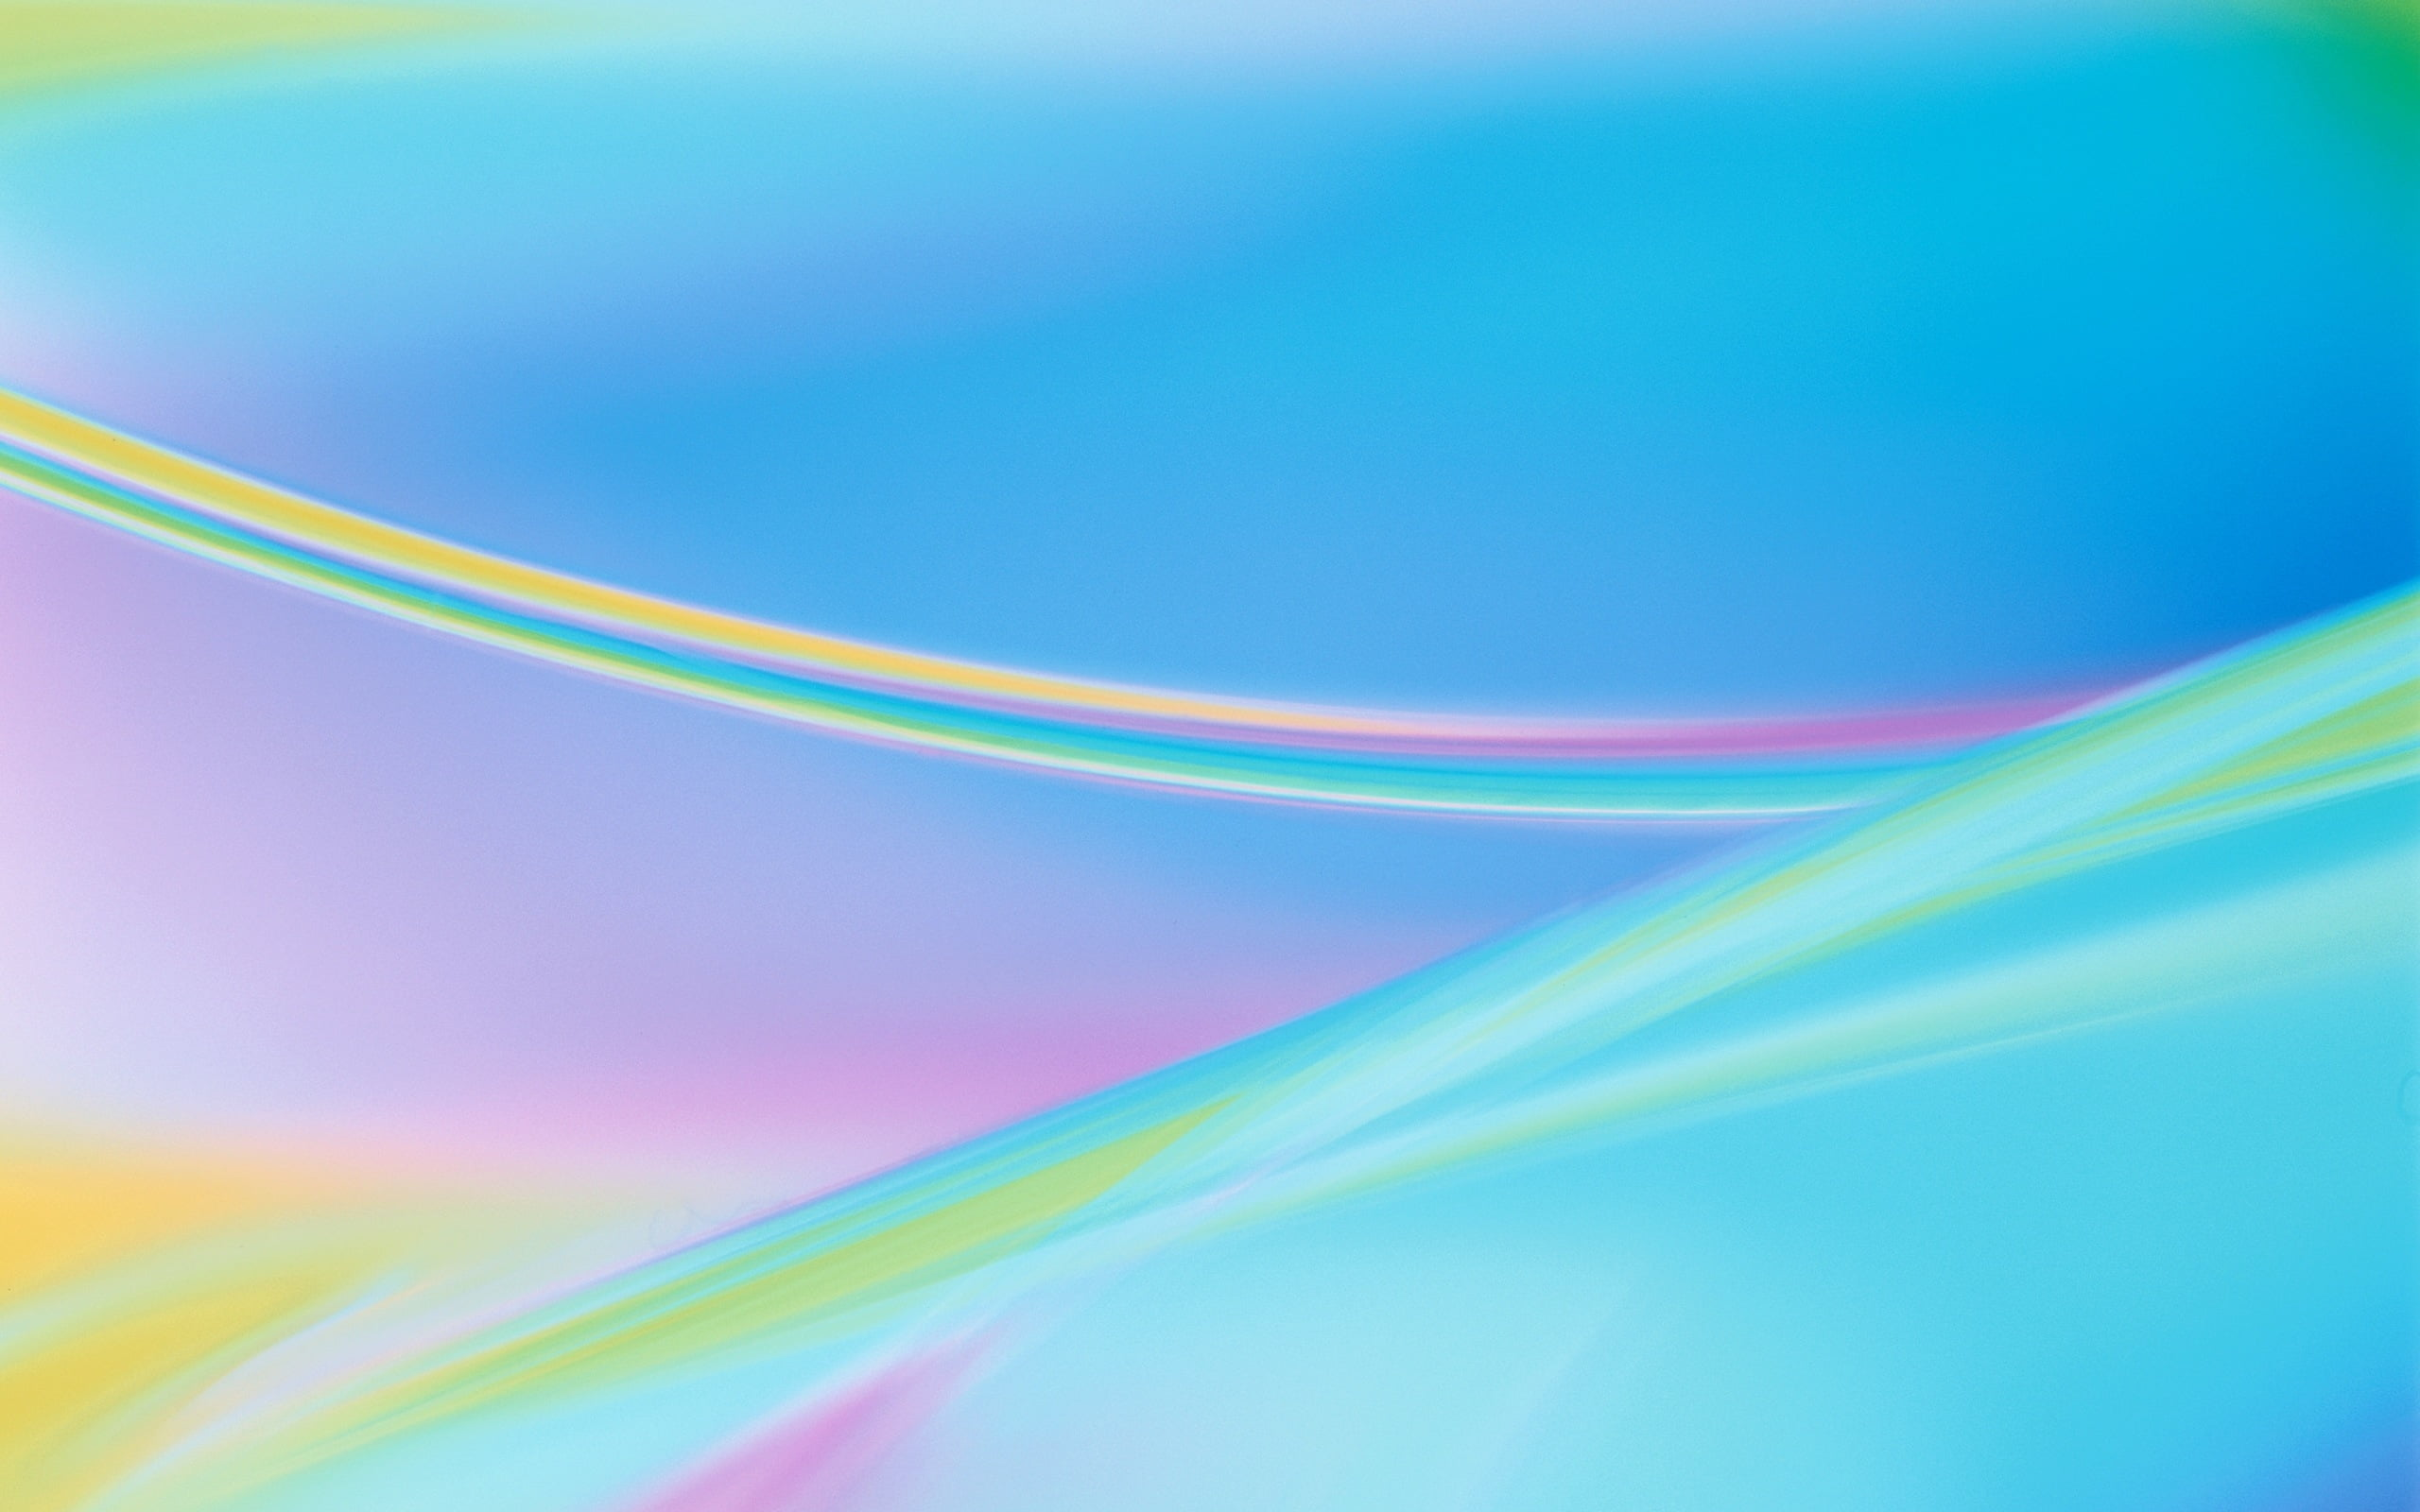 Blue With Pink Abstract 2560x1600 Download Hd Wallpaper Wallpapertip